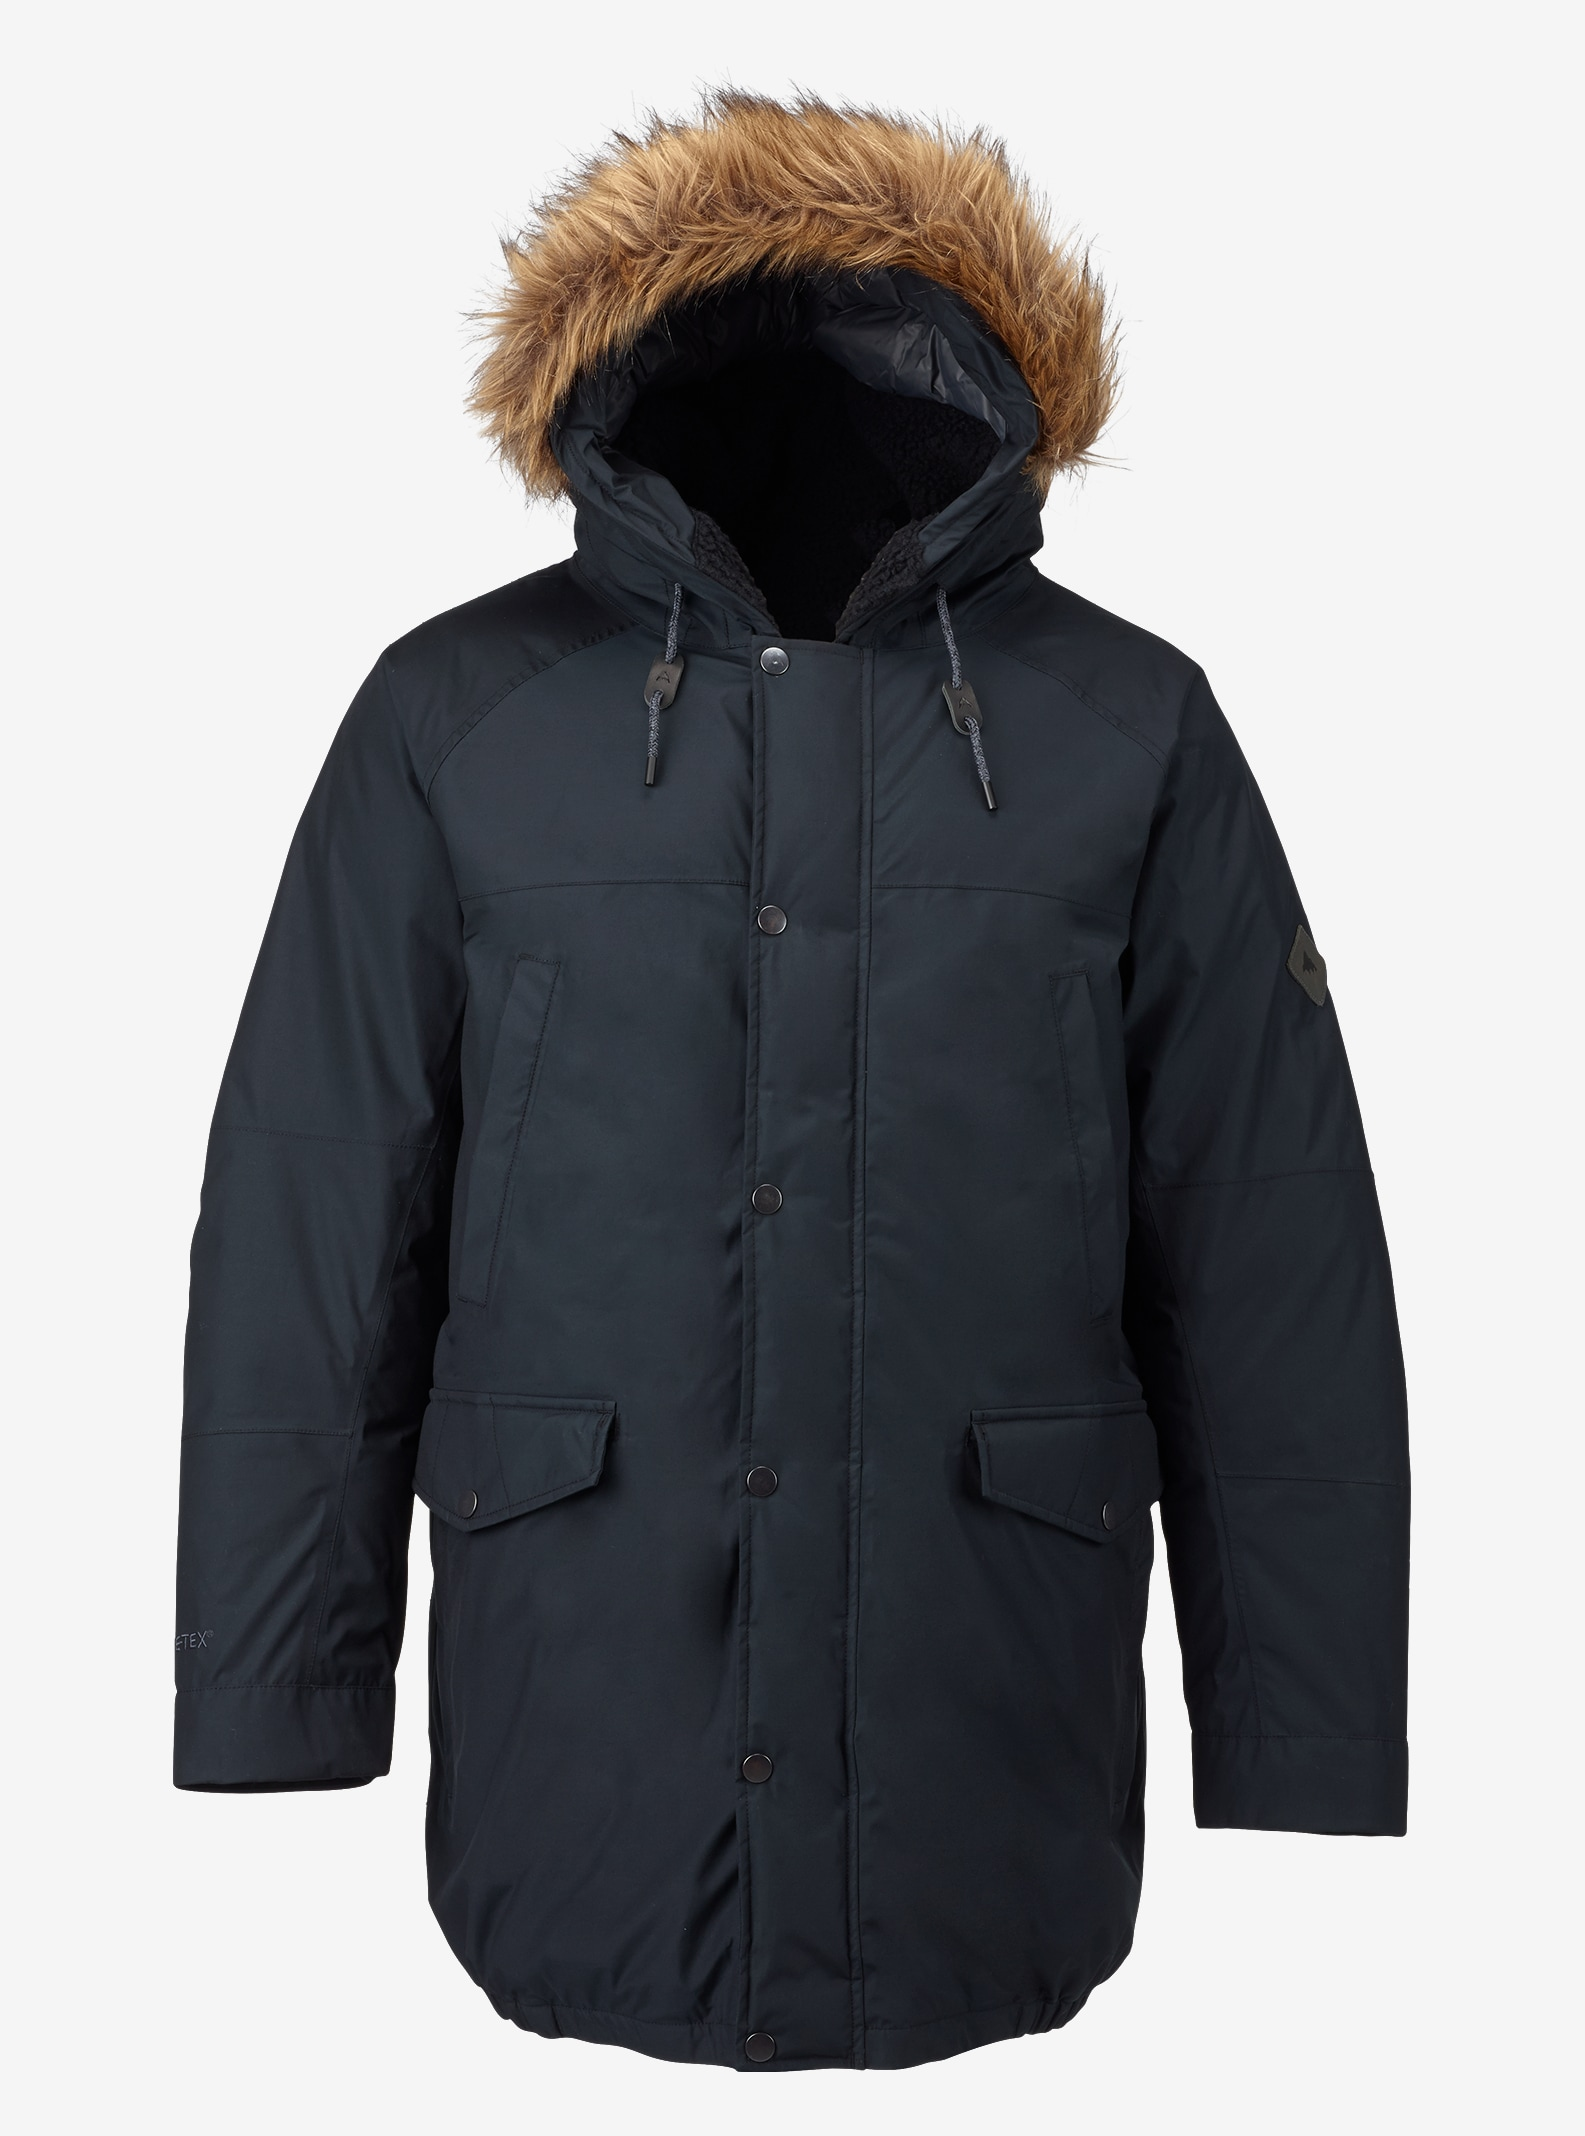 Men's Burton GORE-TEX® Garrison Jacket shown in True Black